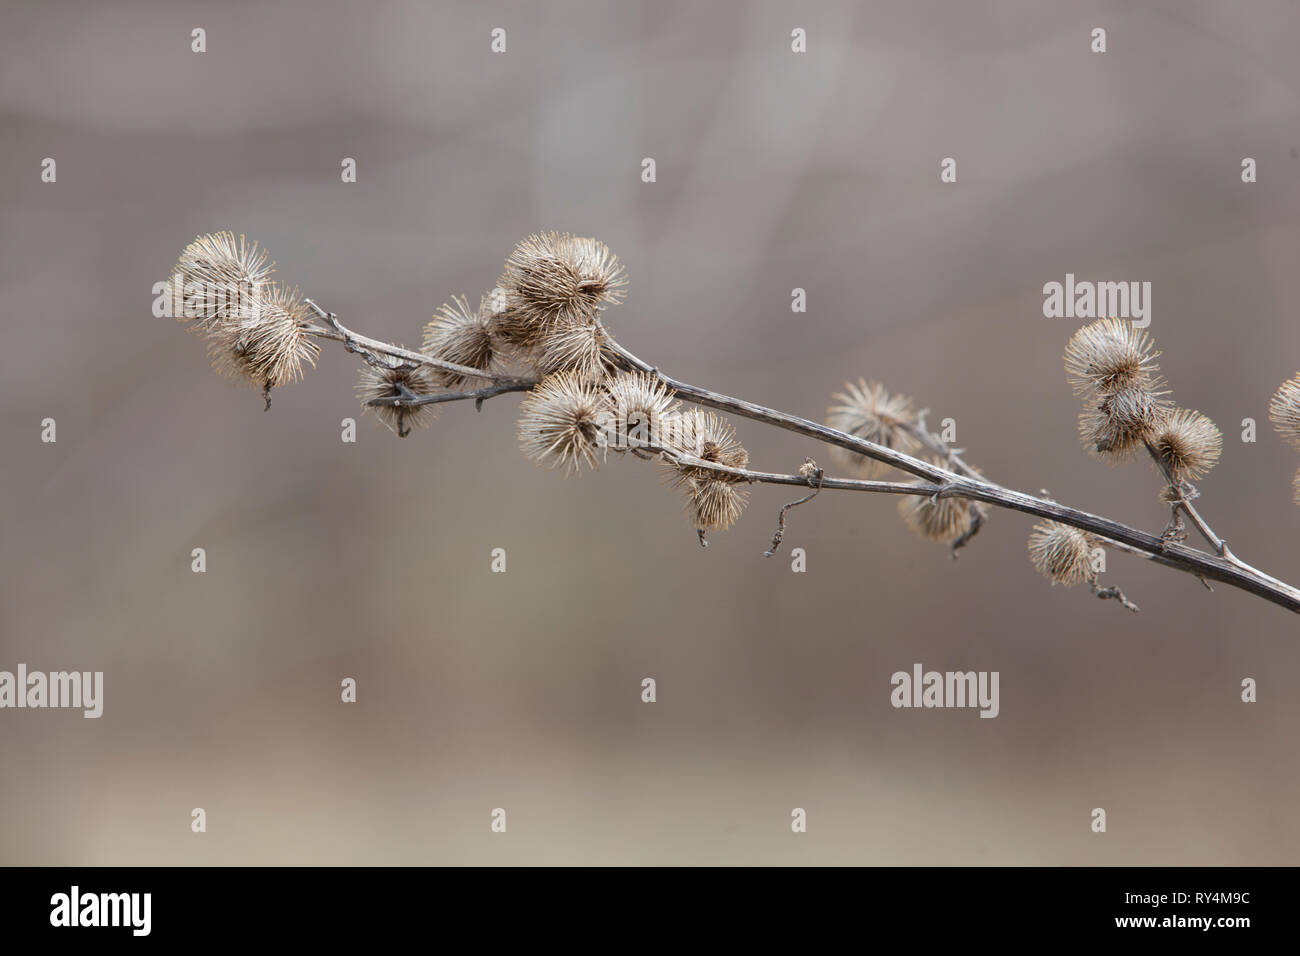 Flora Weeds Burdock Root Spring New Growth isolated on a blurred background - Stock Image